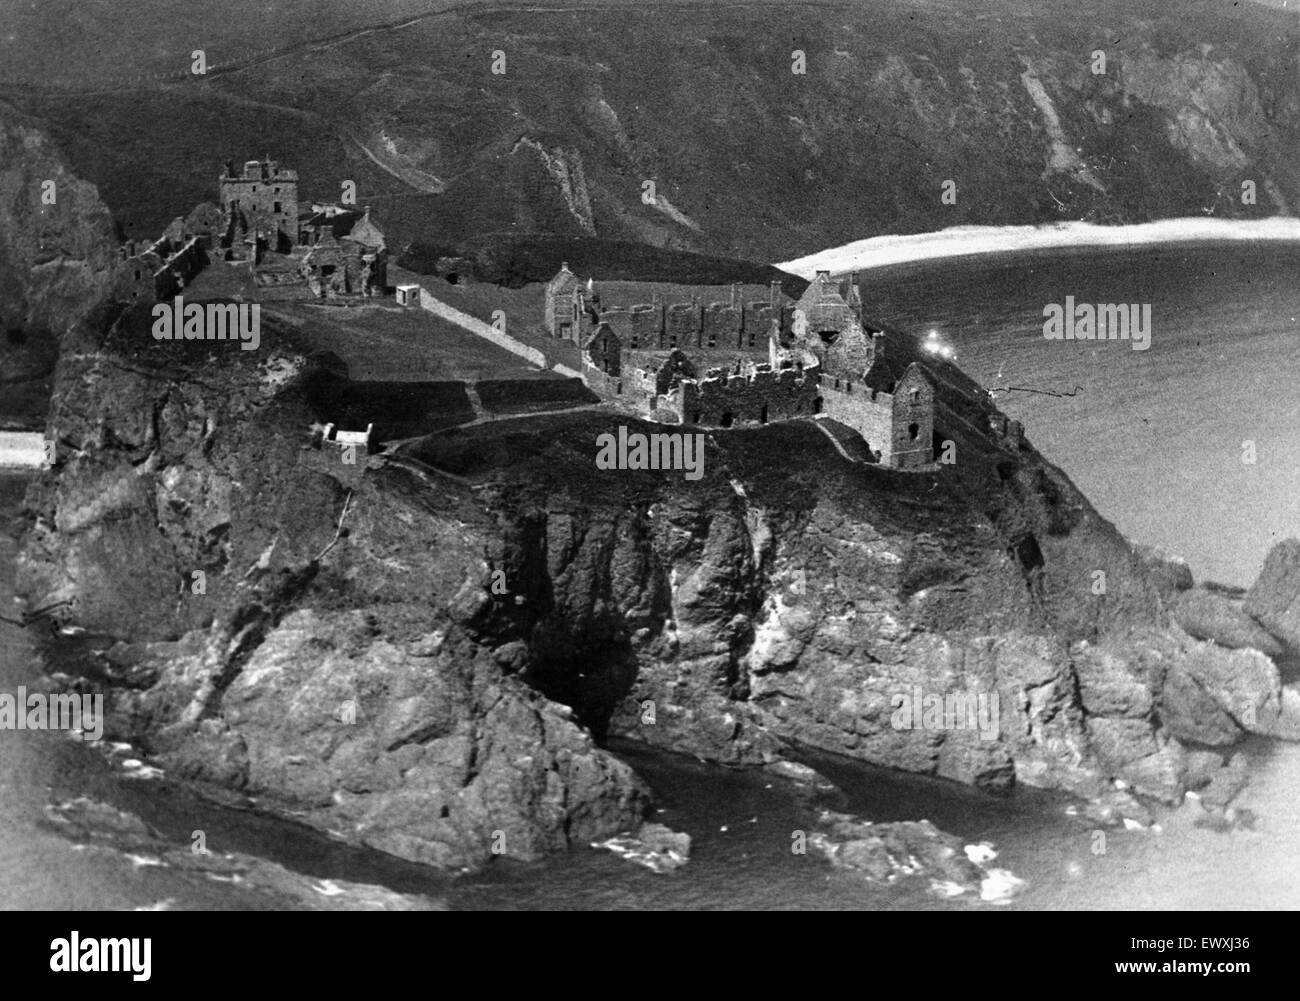 General view of the ruined medieval fortress of Dunnottar Castle near Stonehaven, Aberdeenshire. Circa 1935. - Stock Image